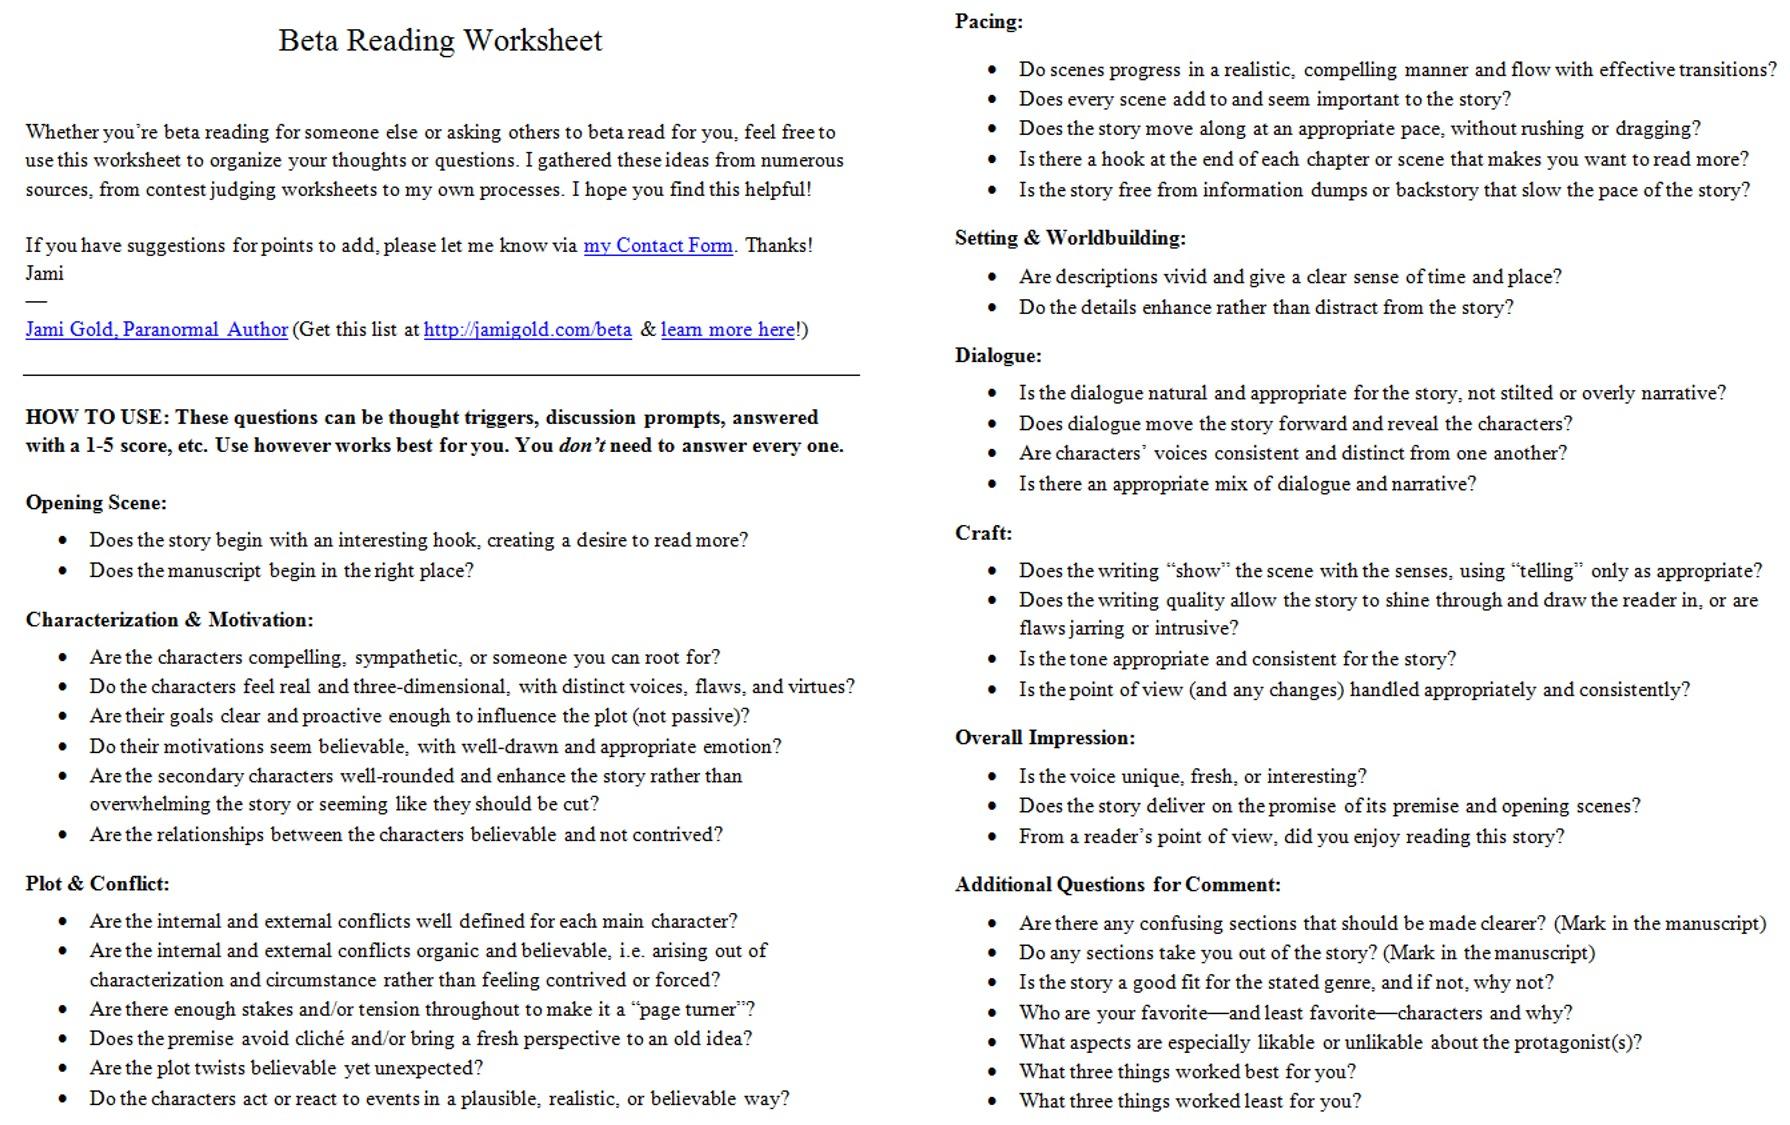 Aldiablosus  Unique Worksheets For Writers  Jami Gold Paranormal Author With Remarkable Screen Shot Of The Twopage Beta Reading Worksheet With Attractive First Class Maths Worksheets Also Cognitive Behaviour Therapy Worksheets In Addition Reading Comprehension Worksheet First Grade And Ks Literacy Worksheets As Well As Symmetry For Kids Worksheets Additionally Addition Worksheet Ks From Jamigoldcom With Aldiablosus  Remarkable Worksheets For Writers  Jami Gold Paranormal Author With Attractive Screen Shot Of The Twopage Beta Reading Worksheet And Unique First Class Maths Worksheets Also Cognitive Behaviour Therapy Worksheets In Addition Reading Comprehension Worksheet First Grade From Jamigoldcom